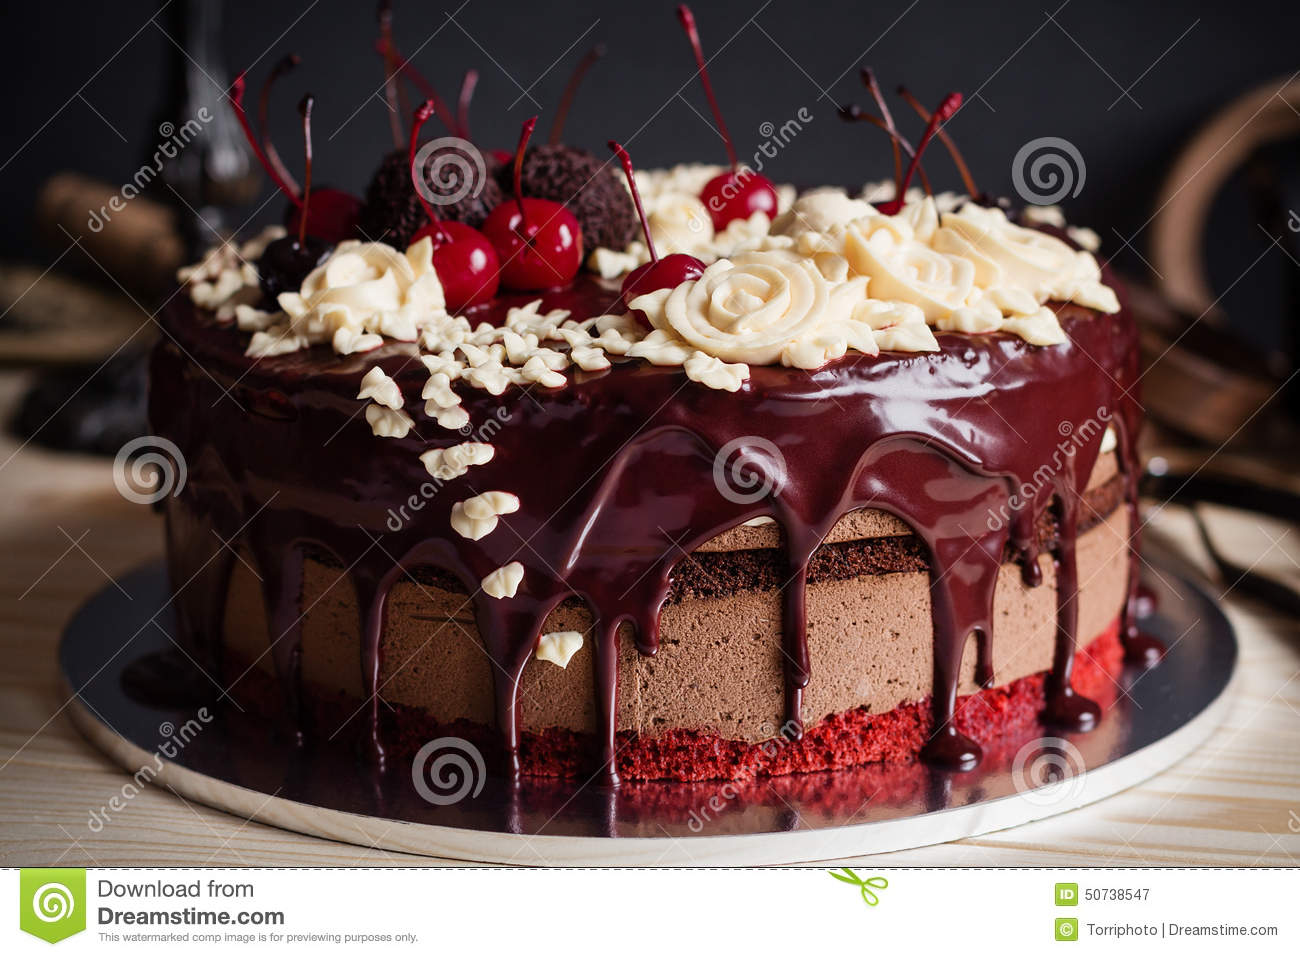 Download Decoration Of Cake : Layer Cake Decorated With Chocolate Glaze, Cream Flowers ...